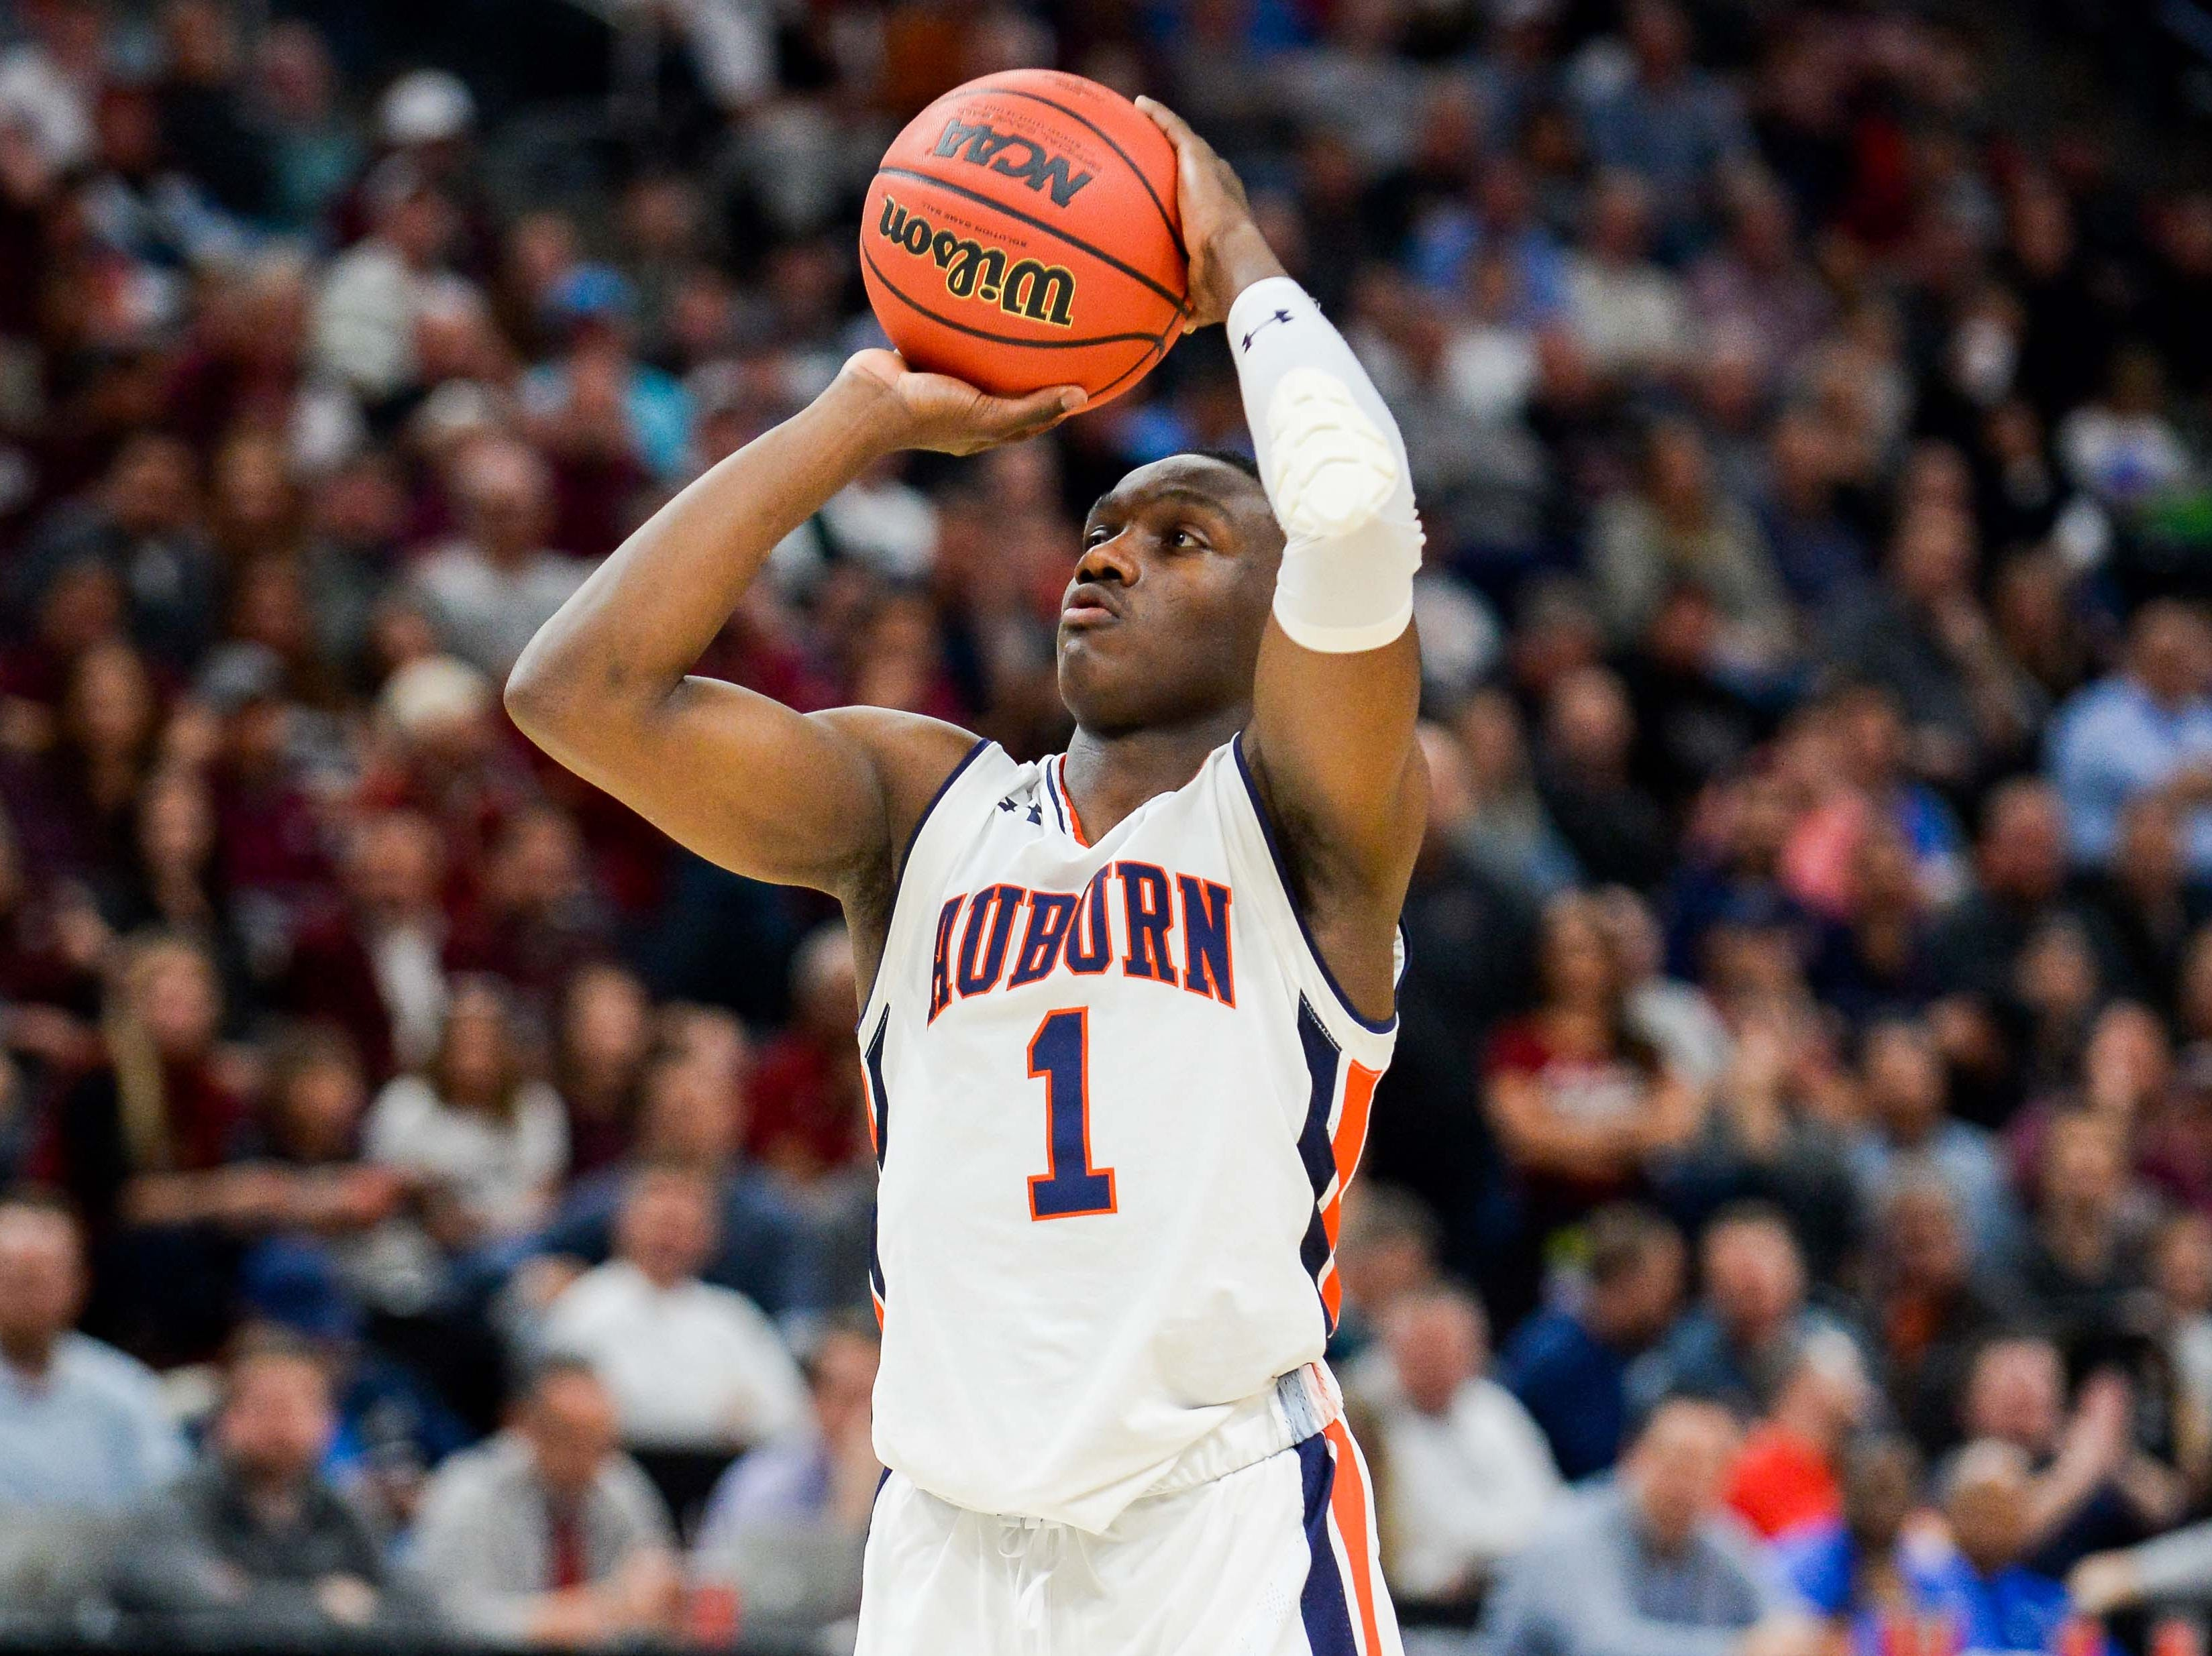 Mar 21, 2019; Salt Lake City, UT, USA; Auburn Tigers guard Jared Harper (1) at the free-throw line during the second half in the first round of the 2019 NCAA Tournament against the New Mexico State Aggies at Vivint Smart Home Arena. Mandatory Credit: Gary A. Vasquez-USA TODAY Sports